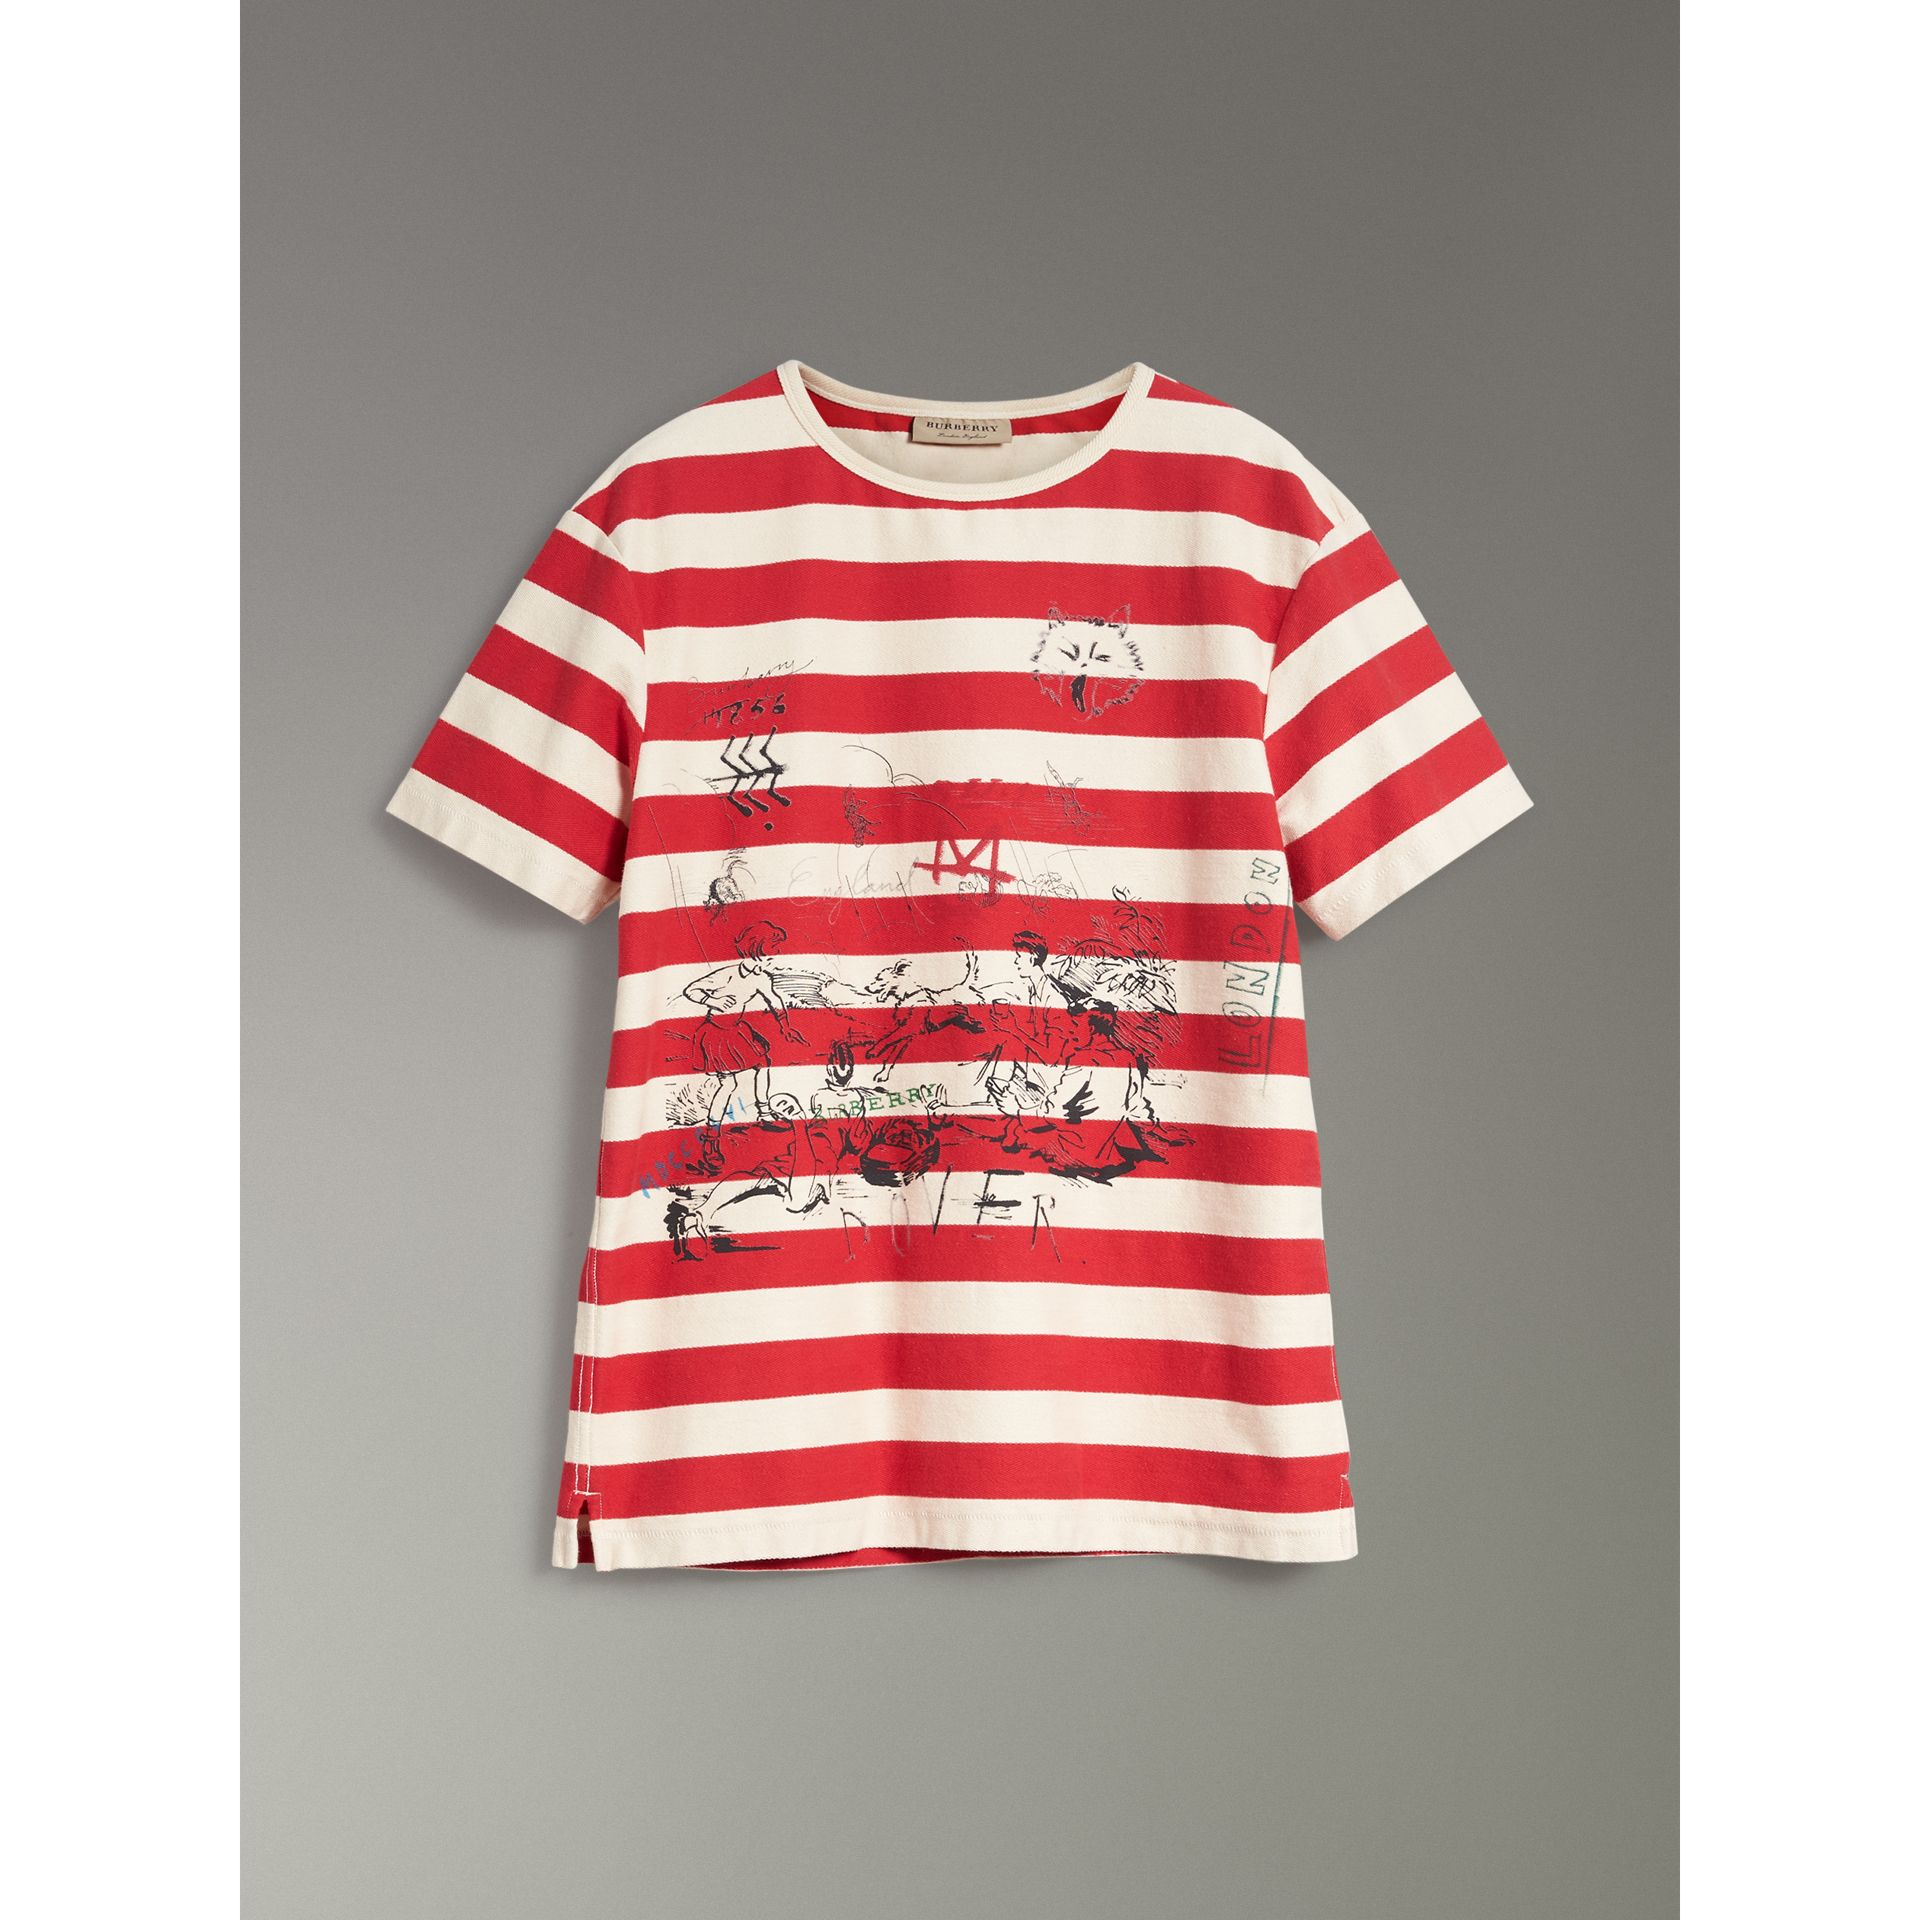 Adventure Print Striped Cotton T-shirt in Off White/parade Red - Men | Burberry Singapore - gallery image 3